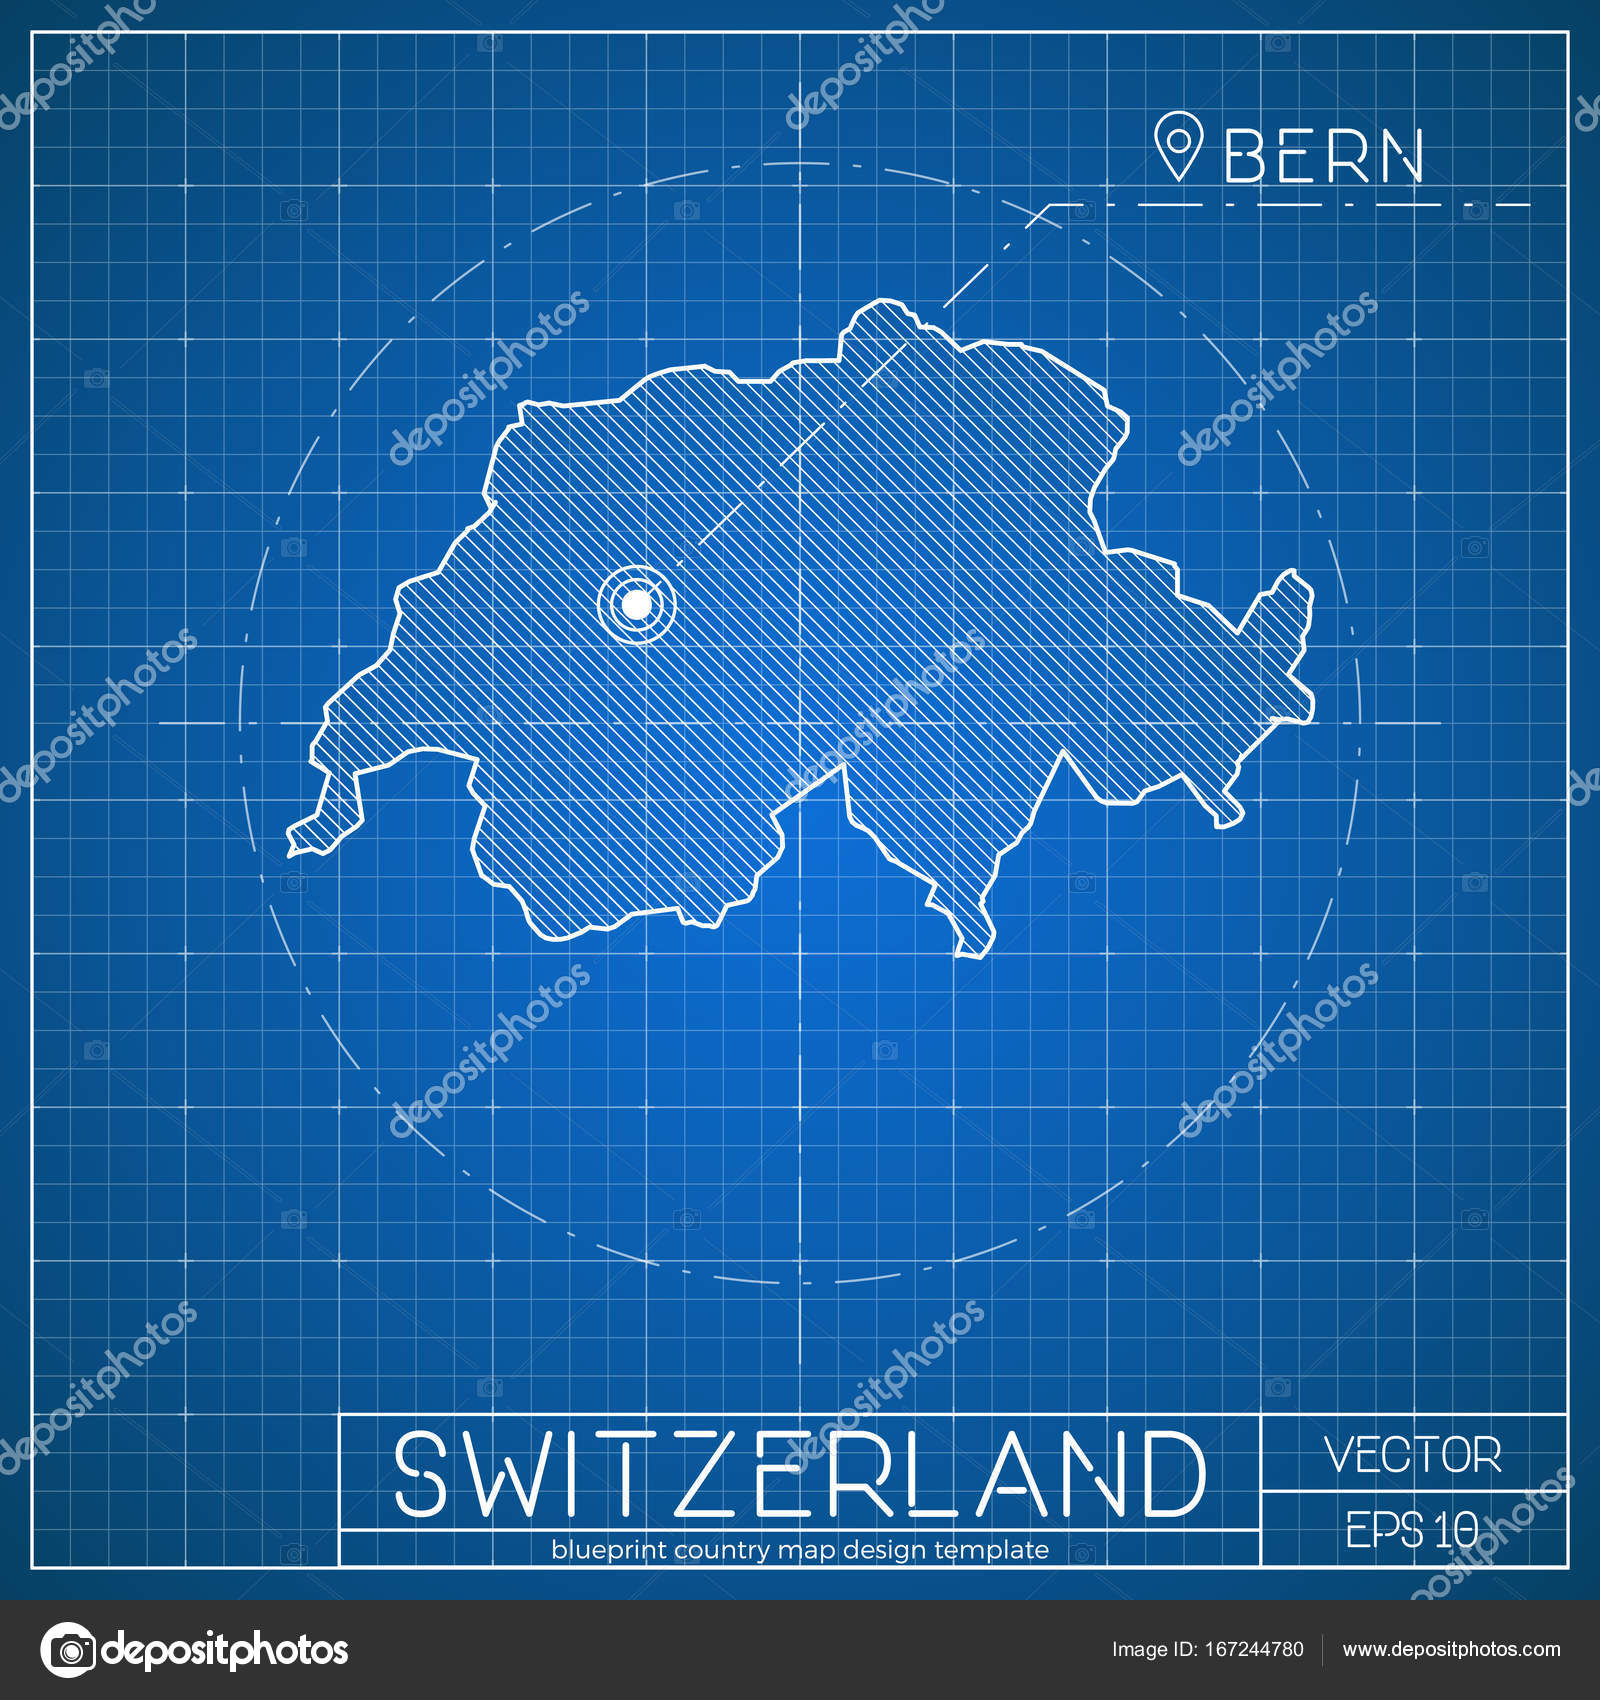 Switzerland blueprint map template with capital city bern marked on switzerland blueprint map template with capital city bern marked on blueprint swiss map vector stock malvernweather Images